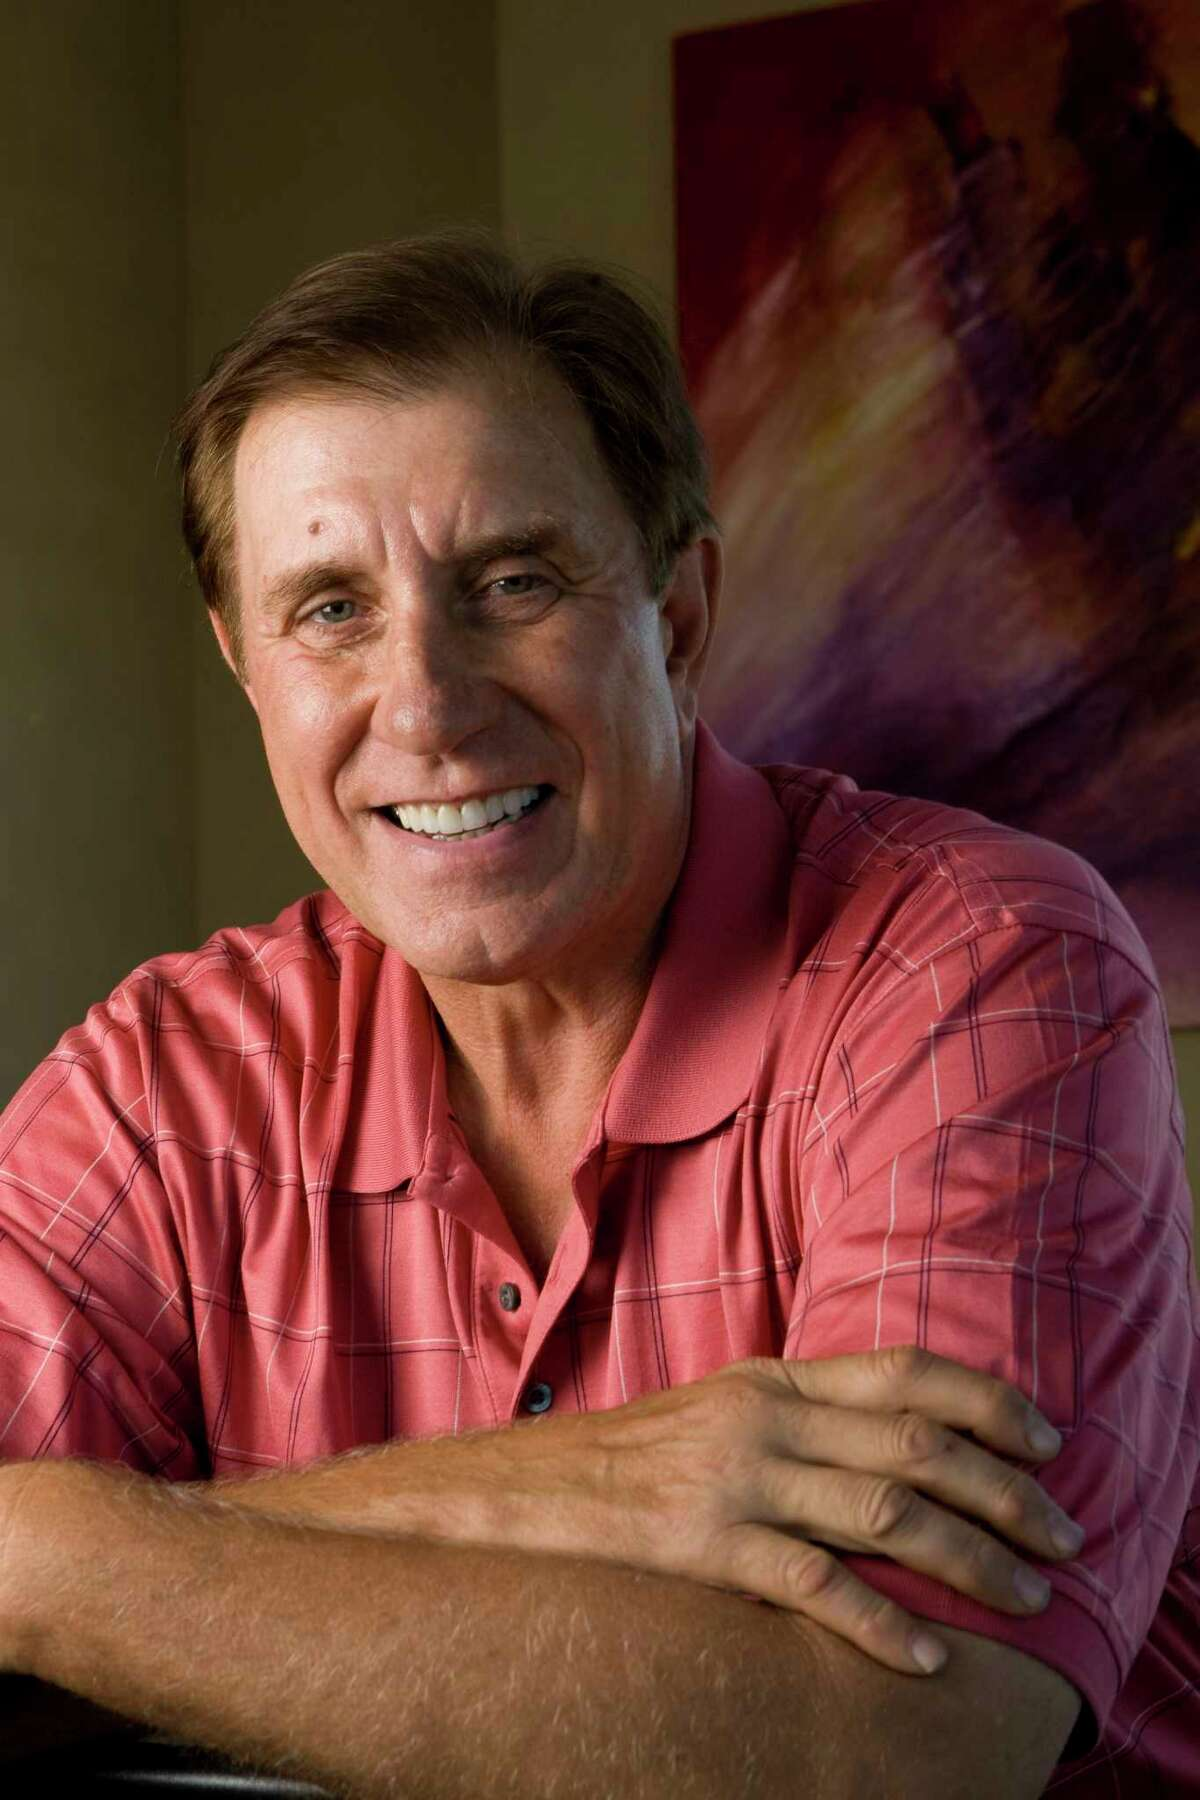 Former Houston Rockets head coach Rudy Tomjanovich poses for a portrait Thursday, March 18, 2010, in Houston. Tomjanovich is involved in a company promoting Cieaura transparent holographic chips claiming to help with pain, sleep and energy. ( Brett Coomer / Chronicle )